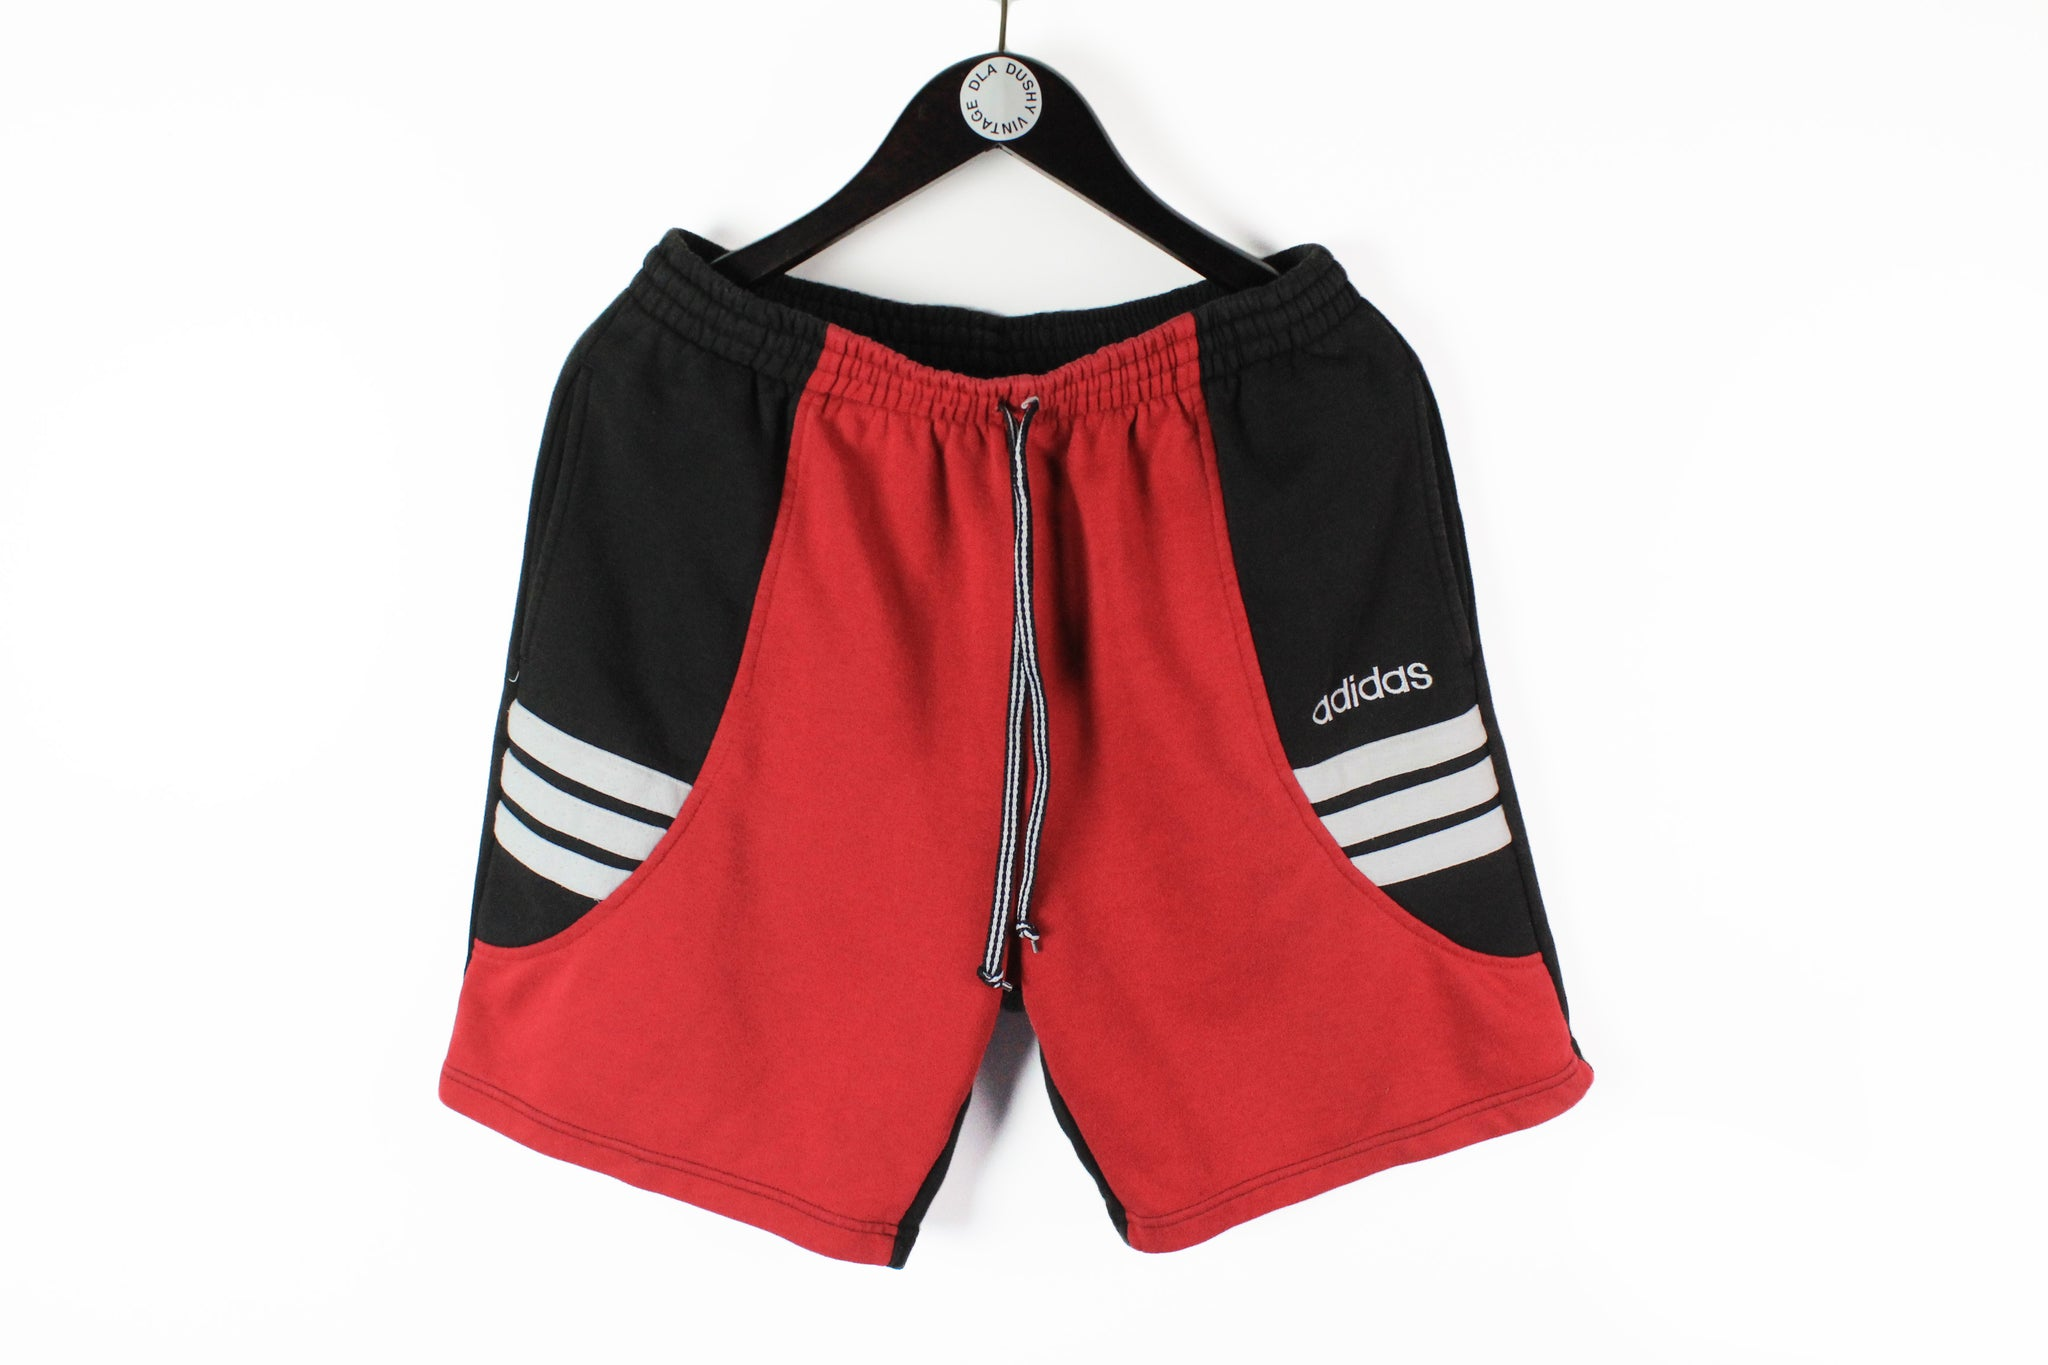 Vintage Adidas Shorts Large red black 90s cotton retro style shorts